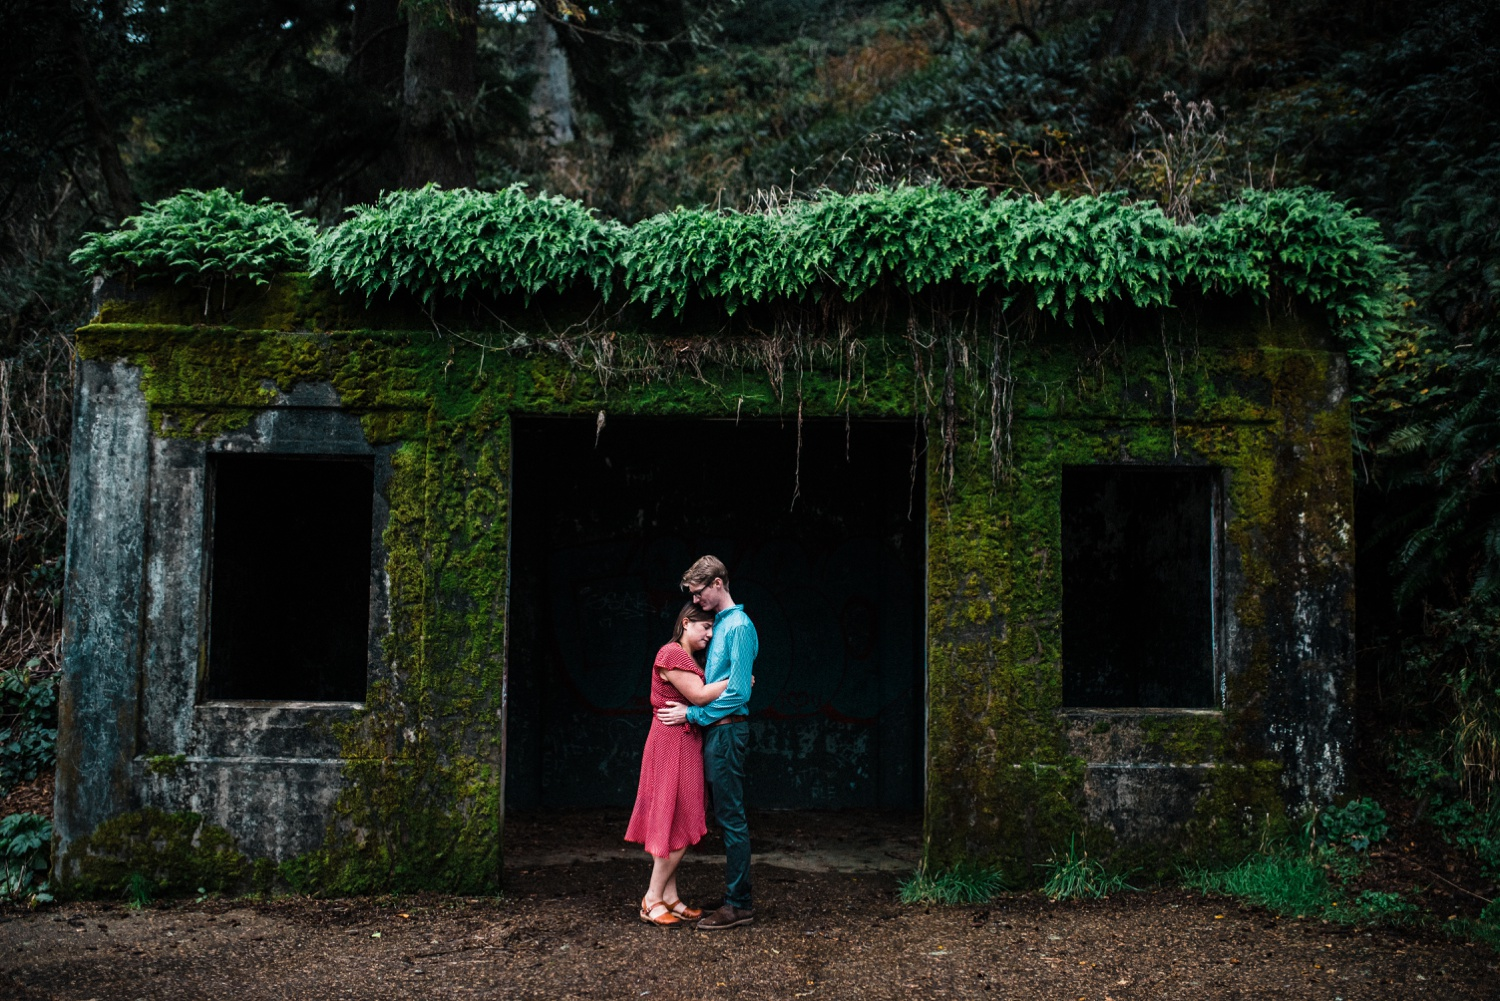 Cape_Disappointment_Engagment_Kailey_Alex_The_Foxes_Photography_119.jpg